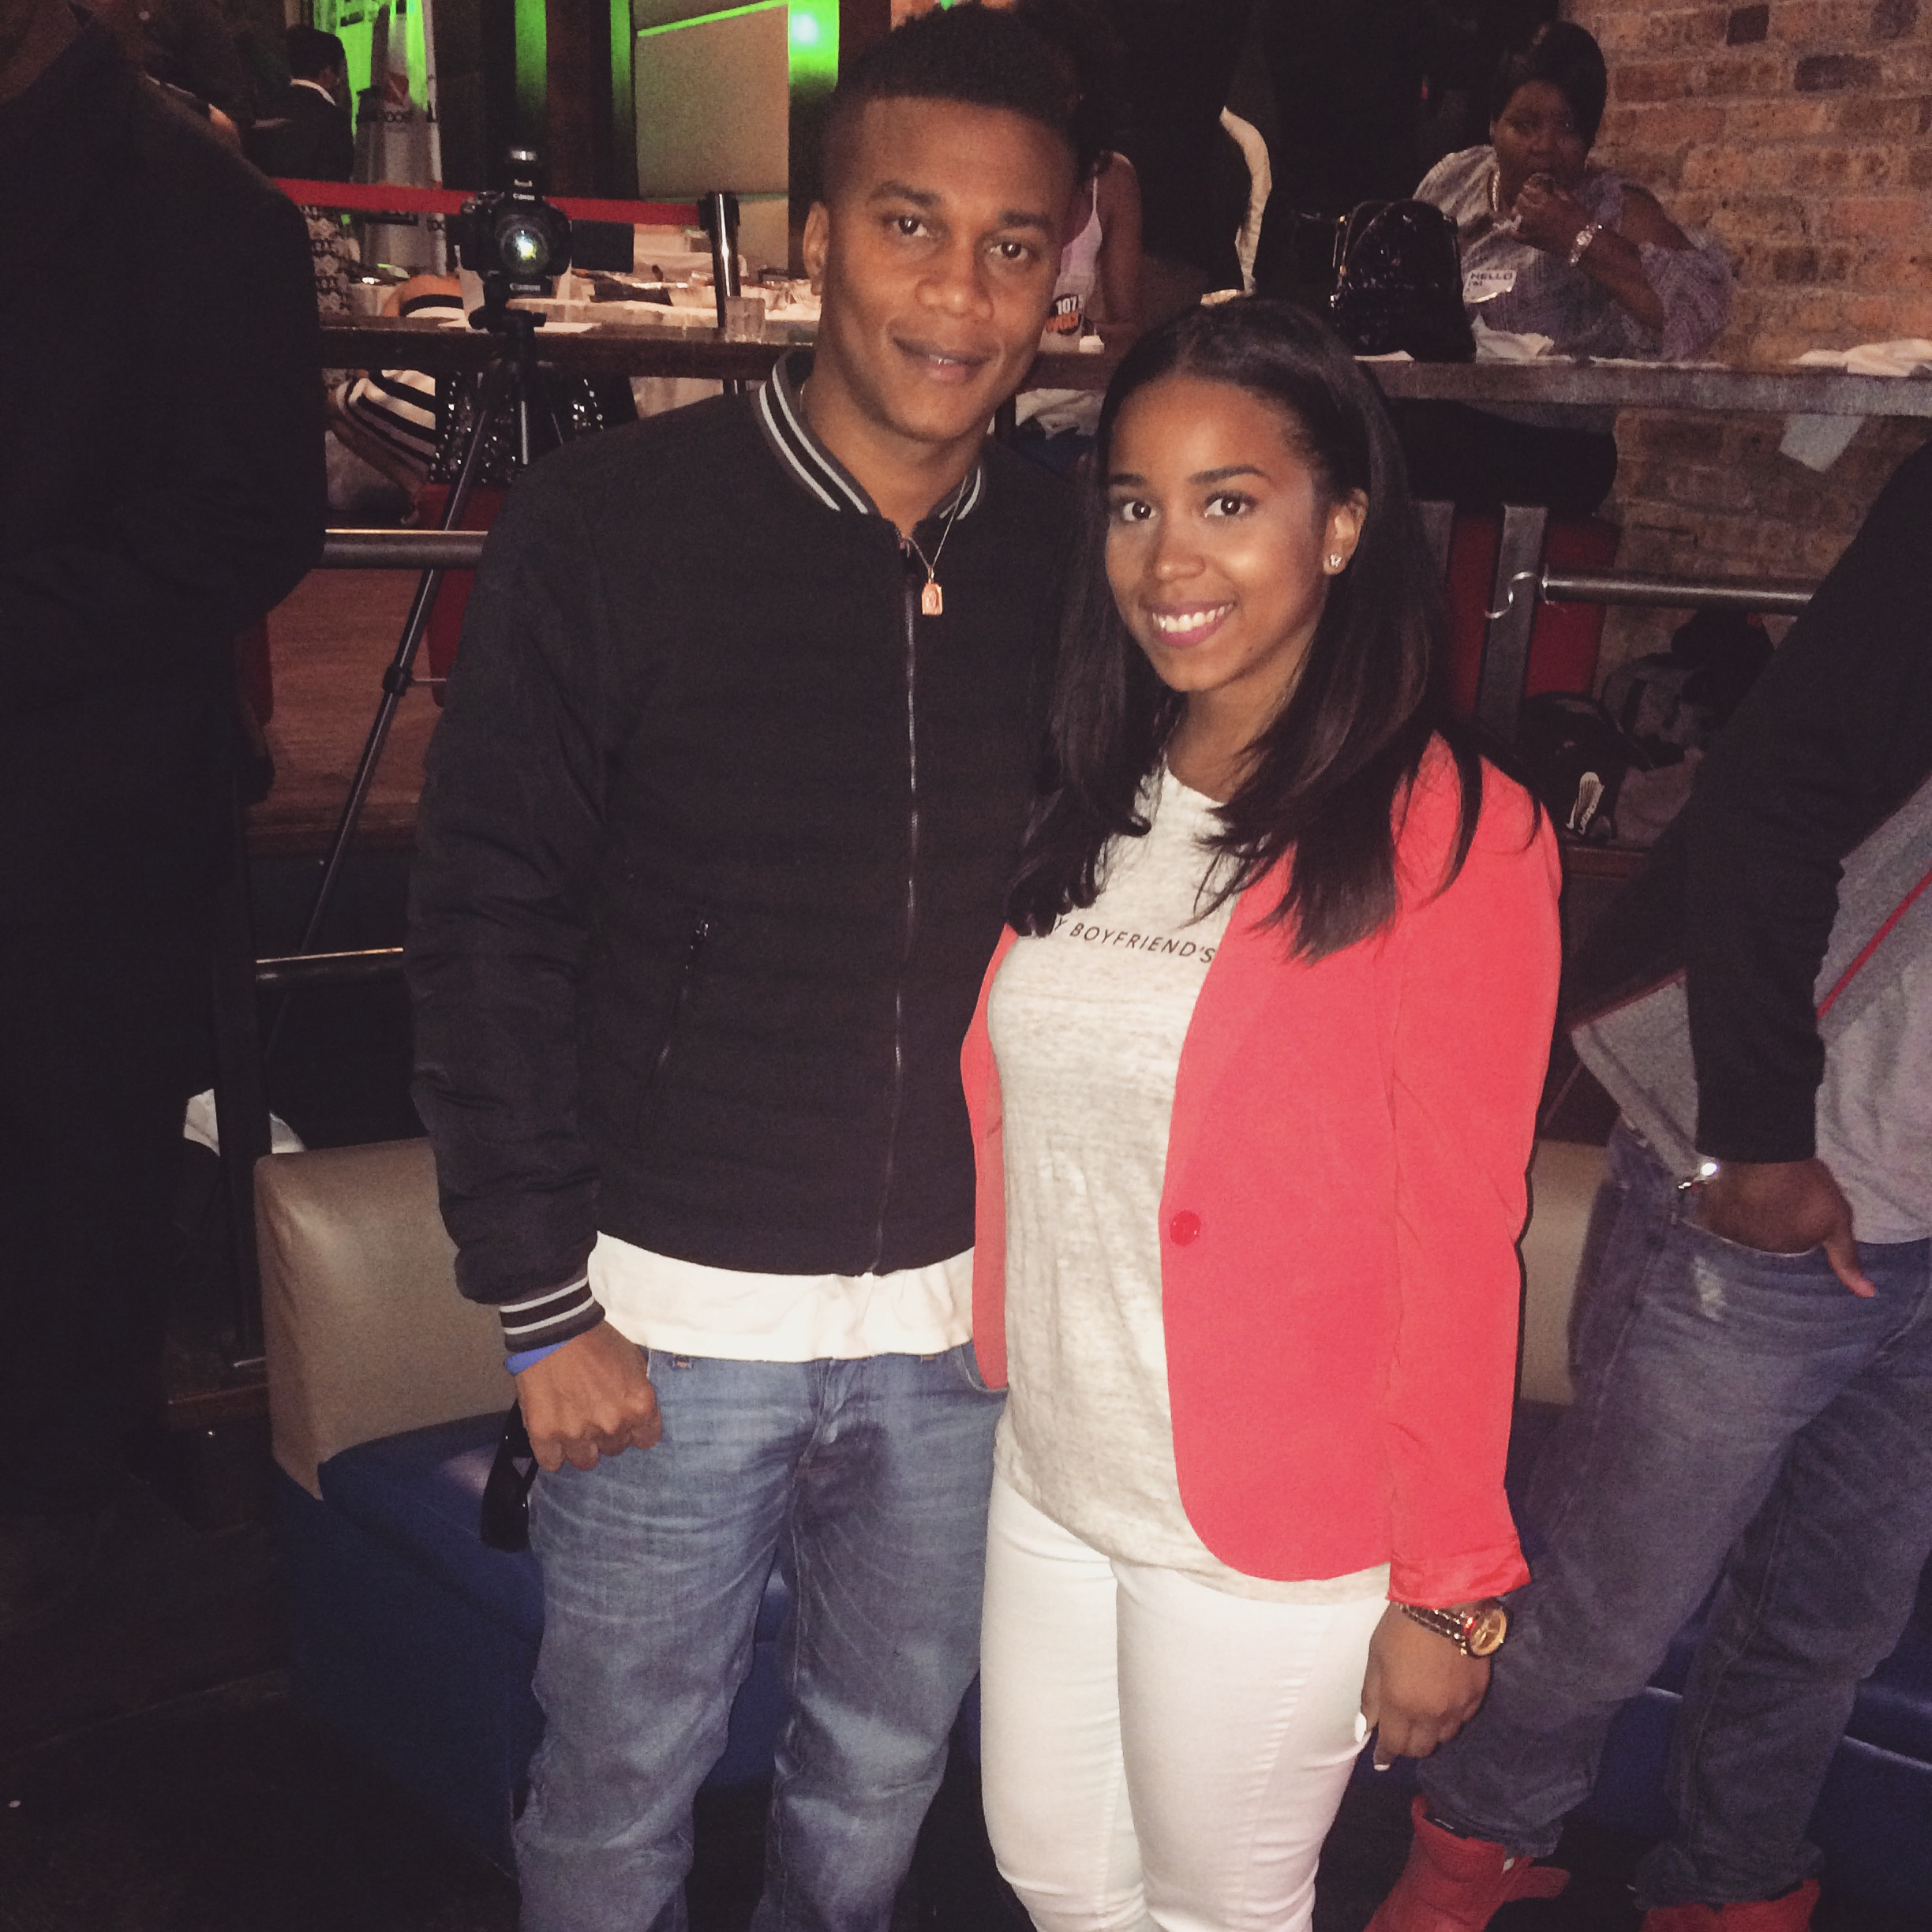 Brotherly Love Actor Cory Hardrict & Briea Chanel